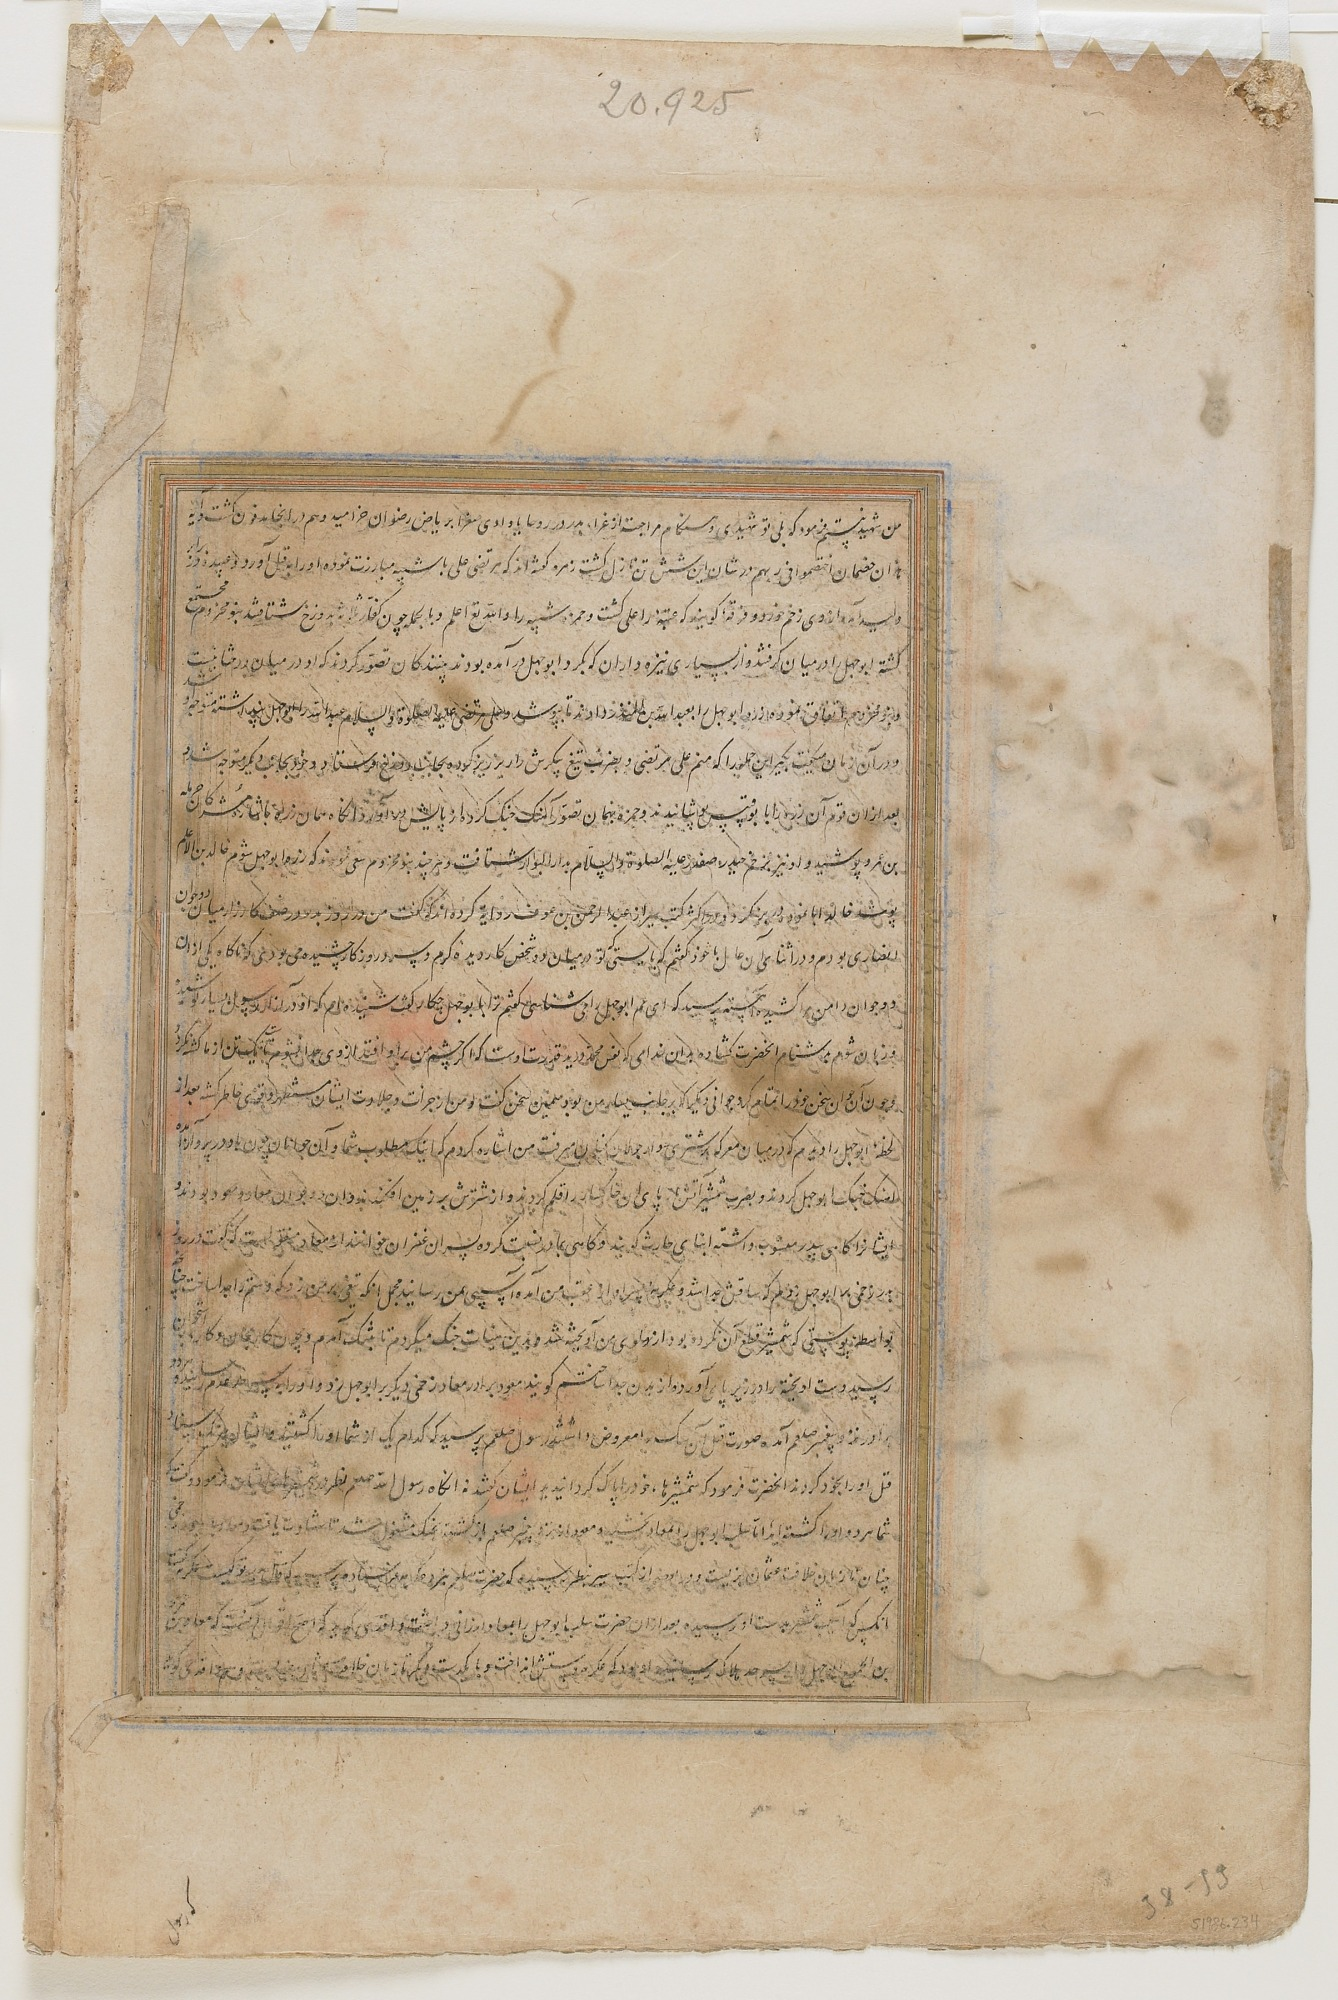 Folio from a Rawdat al-safa (Garden of felicity) by Mirkhwand (d. 1498); recto: Hamza and Ali in battle; verso: Bravery and courage of Ali and Hamza